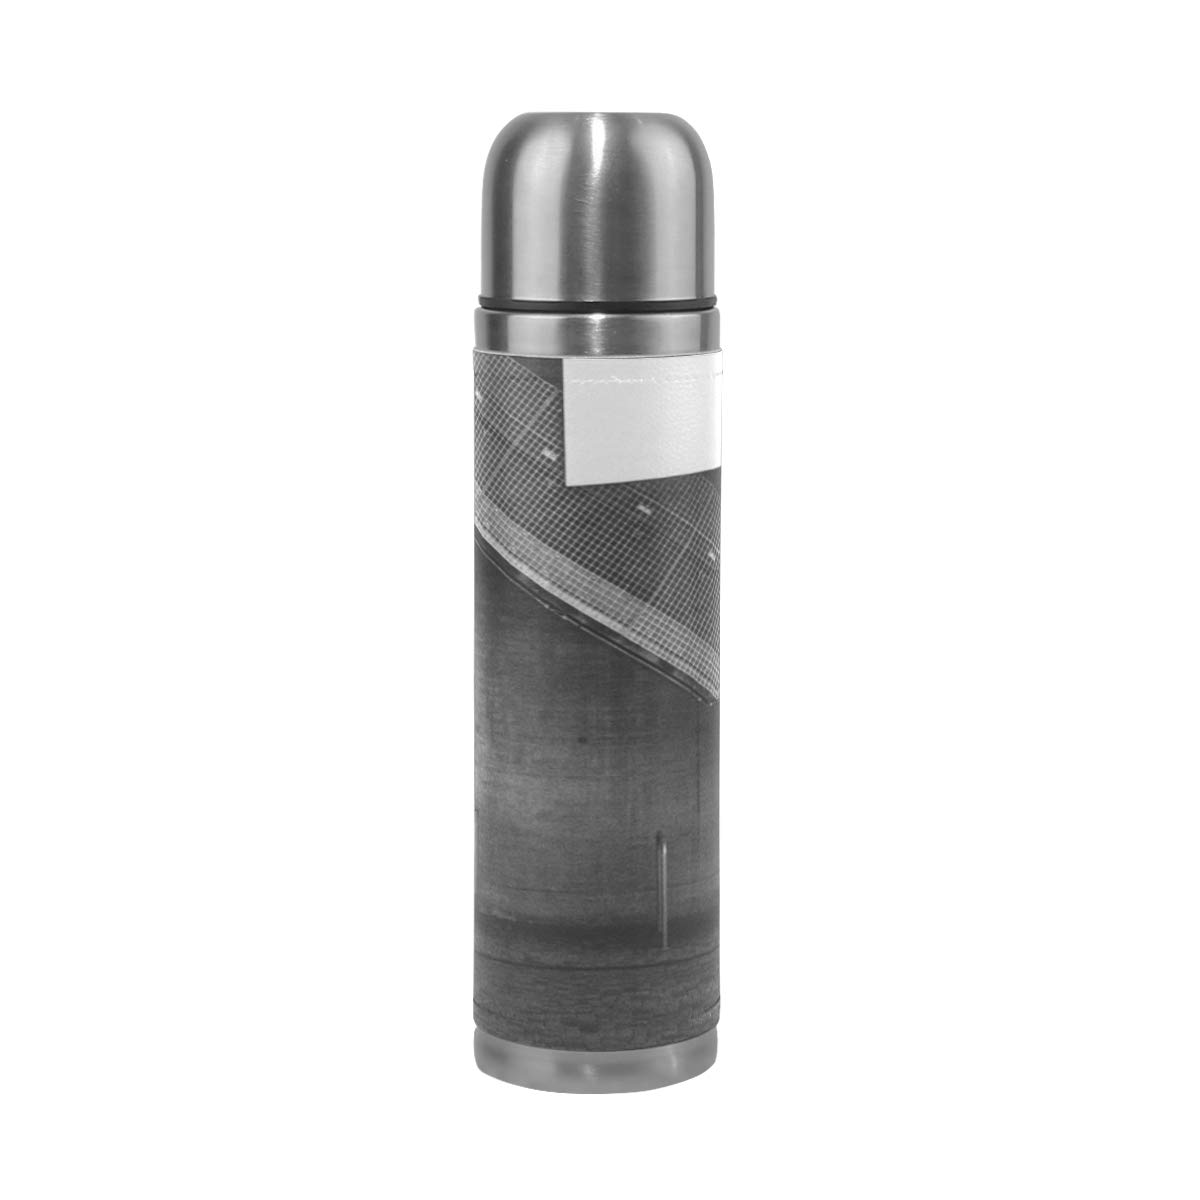 Light Abstract Black And White Architecture Wood 500ML Stainless Steel Double Walled vacuum insulated water bottle Travel Mug Leather Cover Thermos 17 oz